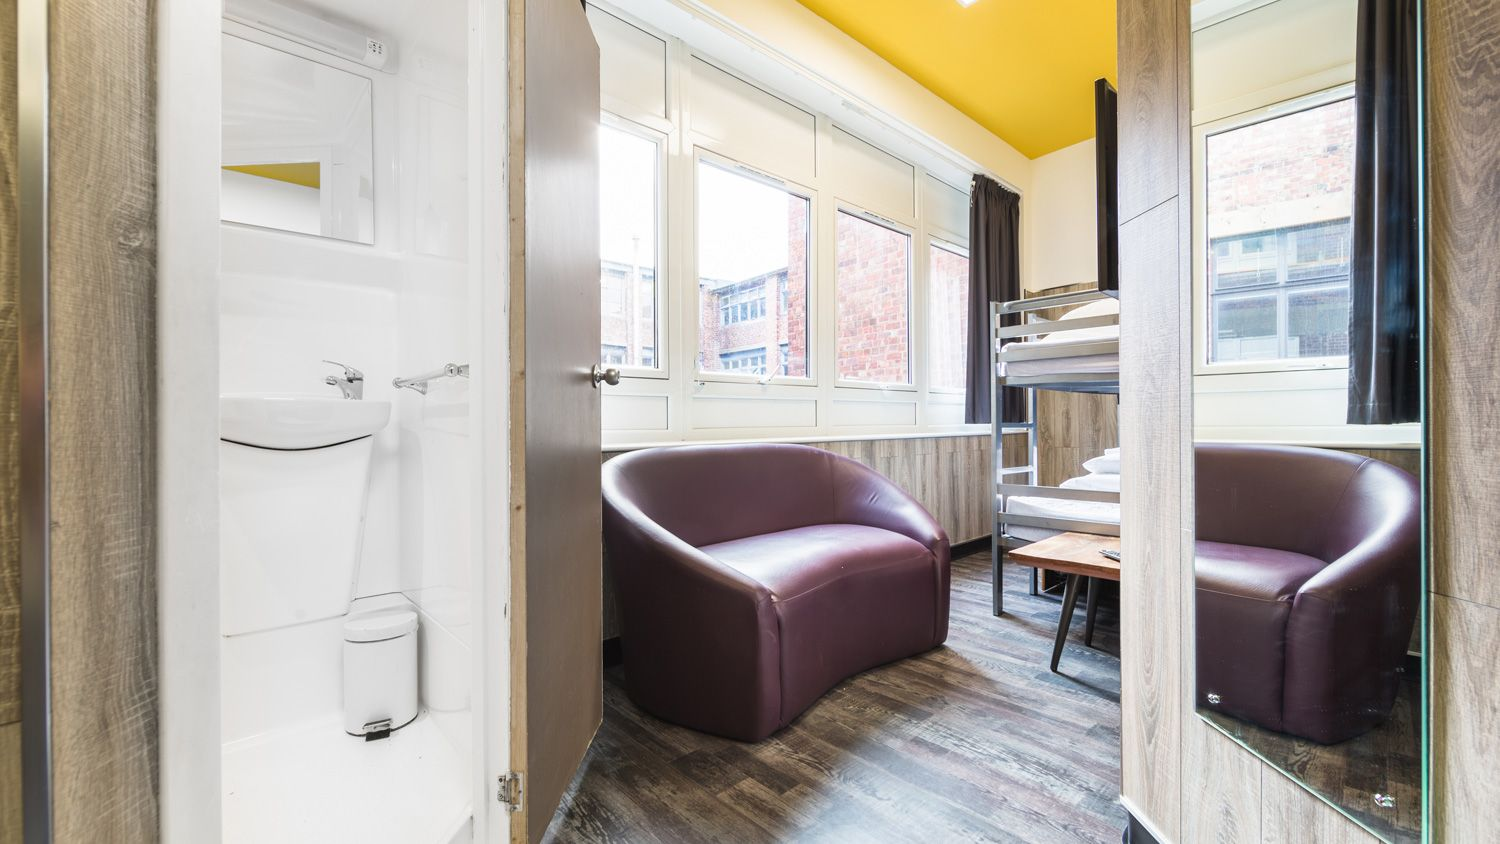 Bed in Shared Mixed Gender Dorm for 4 People at Euro Hostel Newcastle